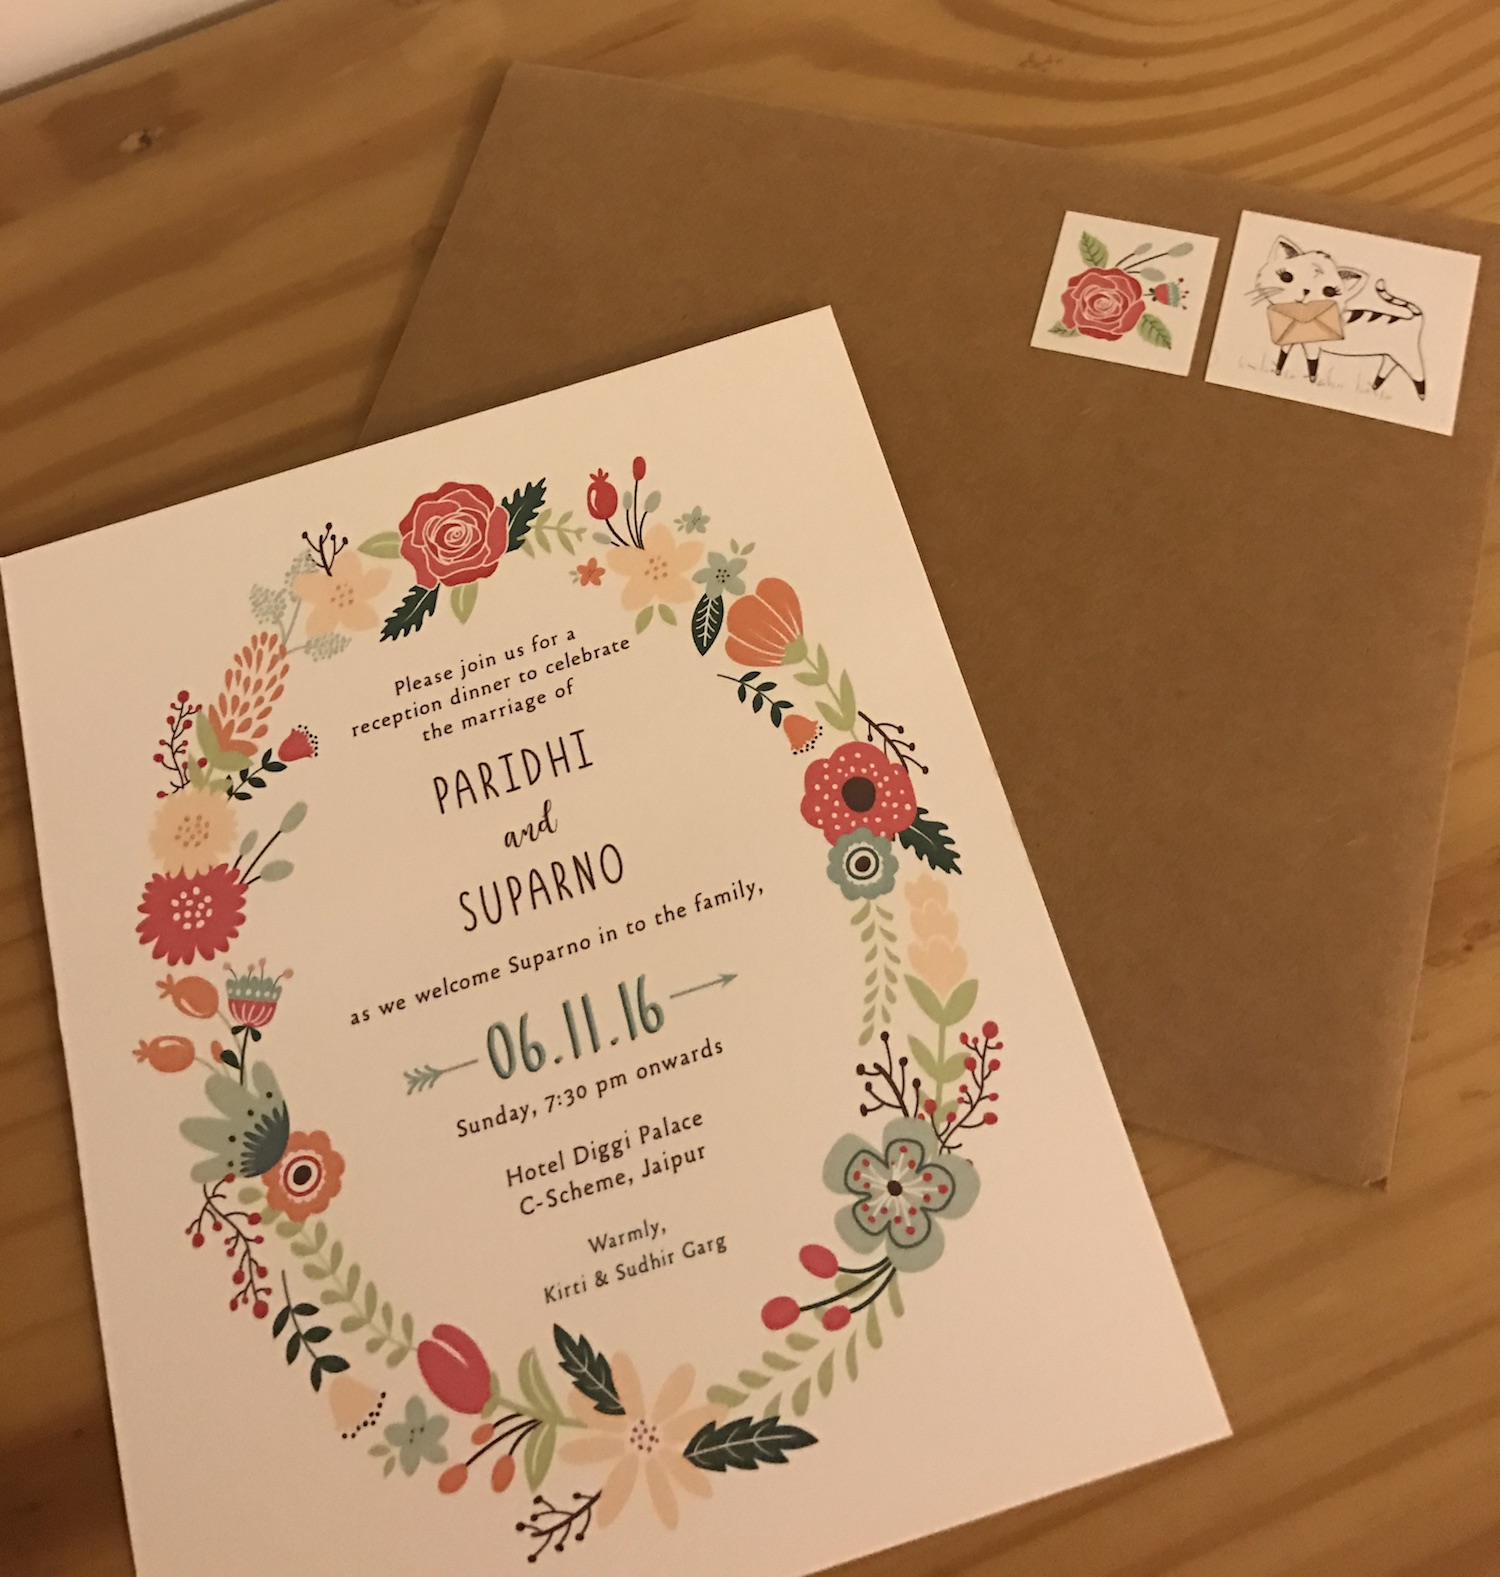 Floral wreath illustrations on unique Indian wedding invitation